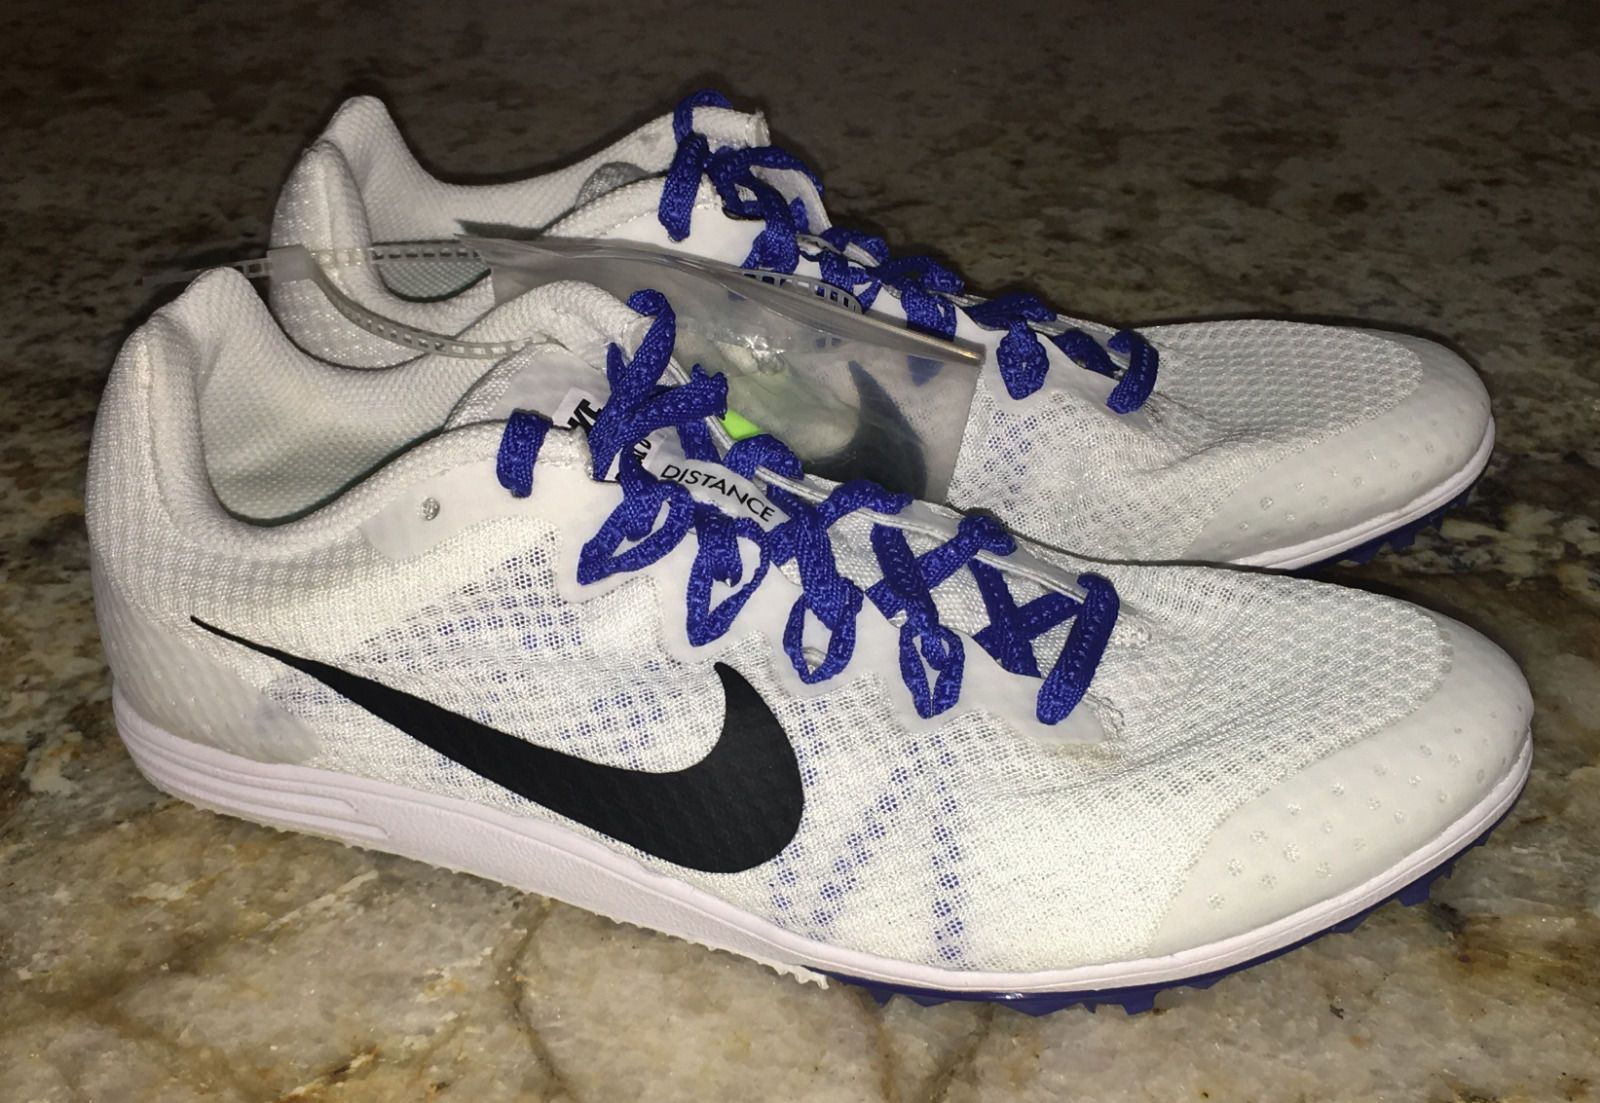 New Womens 8 NIKE ZOOM RIVAL D 9 White Blu Black Mid Distance Track Spikes  Shoes